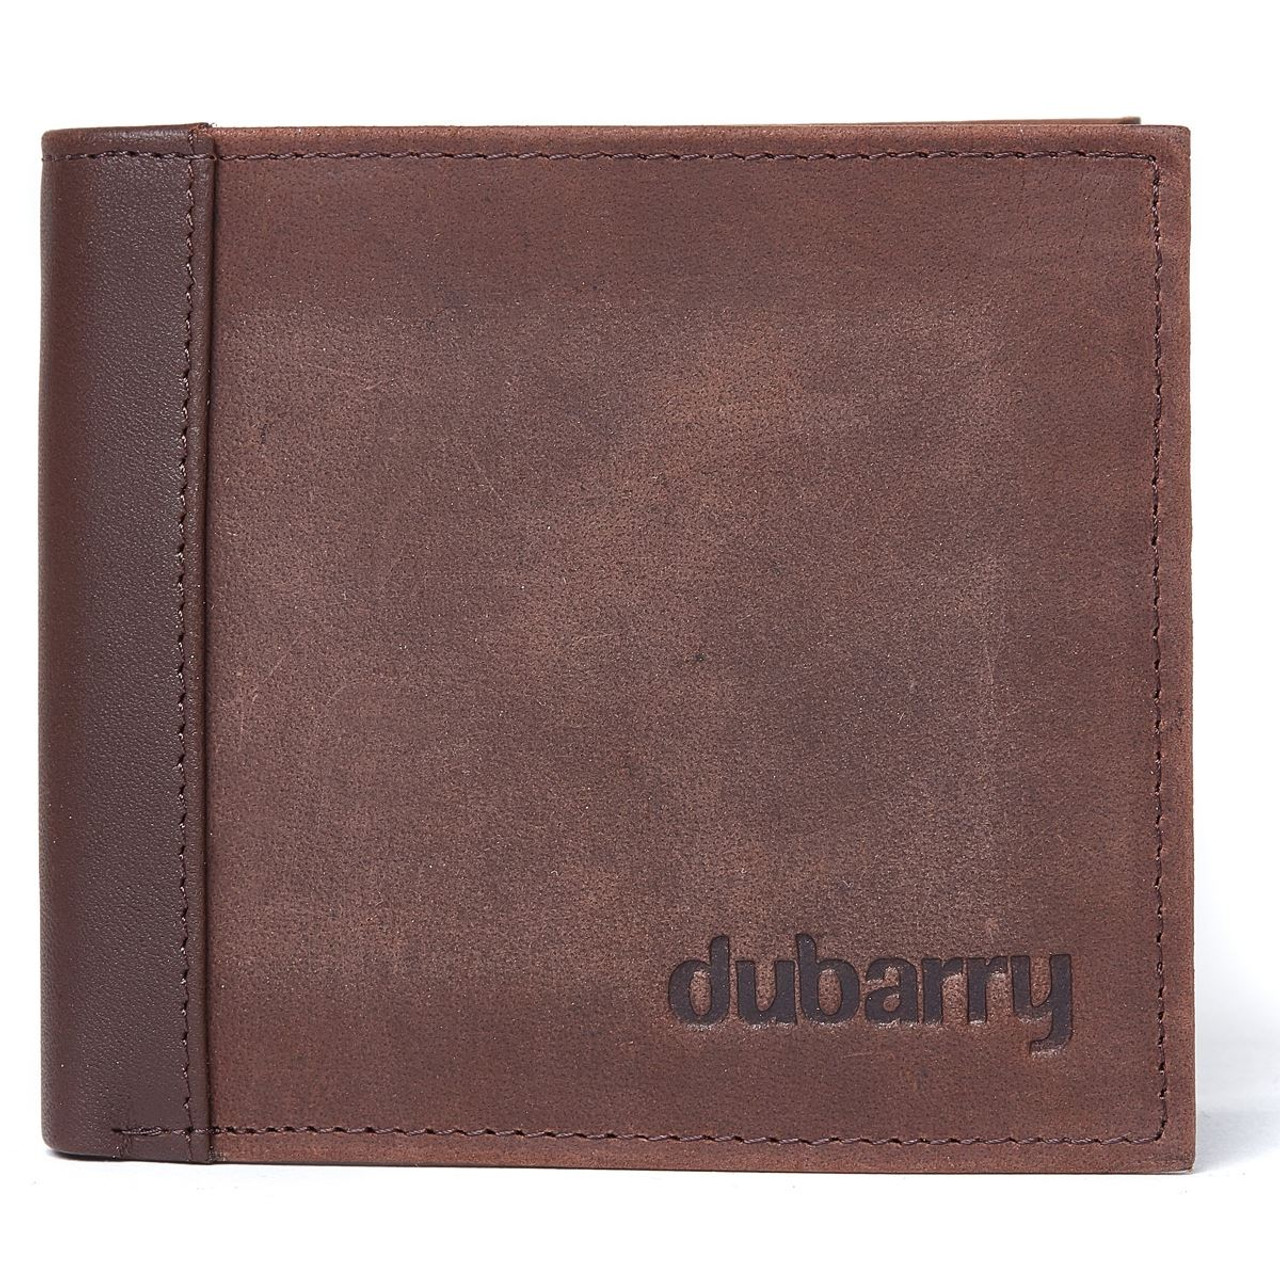 Dubarry Rosmuc Wallet in Old Rum